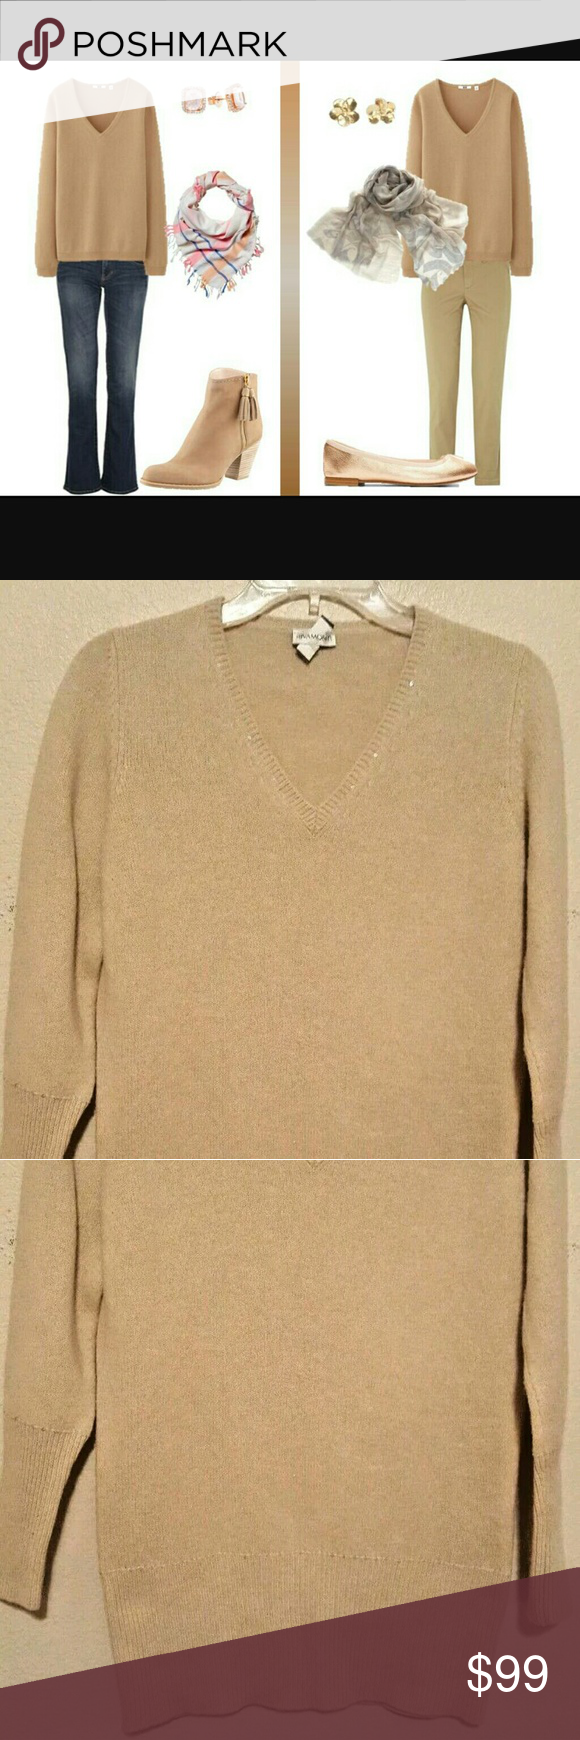 Rivamonti by Brunello Cucinelli wool v-neck sweate Gorgeous and very classy v-neck sweater.  Very warm.  Can be worn in many different ways. Brunello Cucinelli Sweaters V-Necks